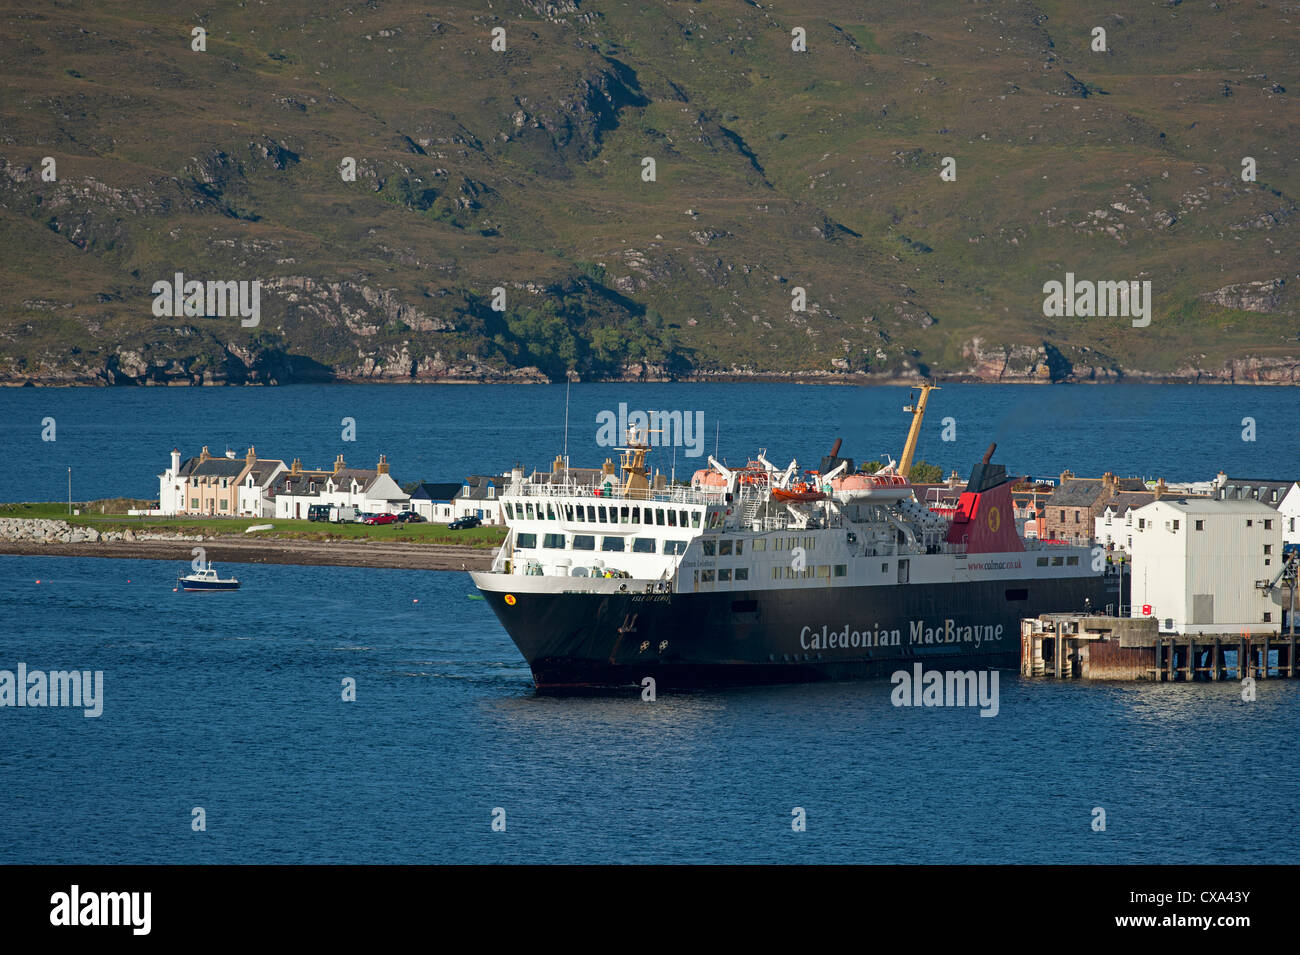 Ullapool, fishing and tourist ferry port on Loch Broom, Wester Ross Highland Region Scotland.   SCO 8532 Stock Photo